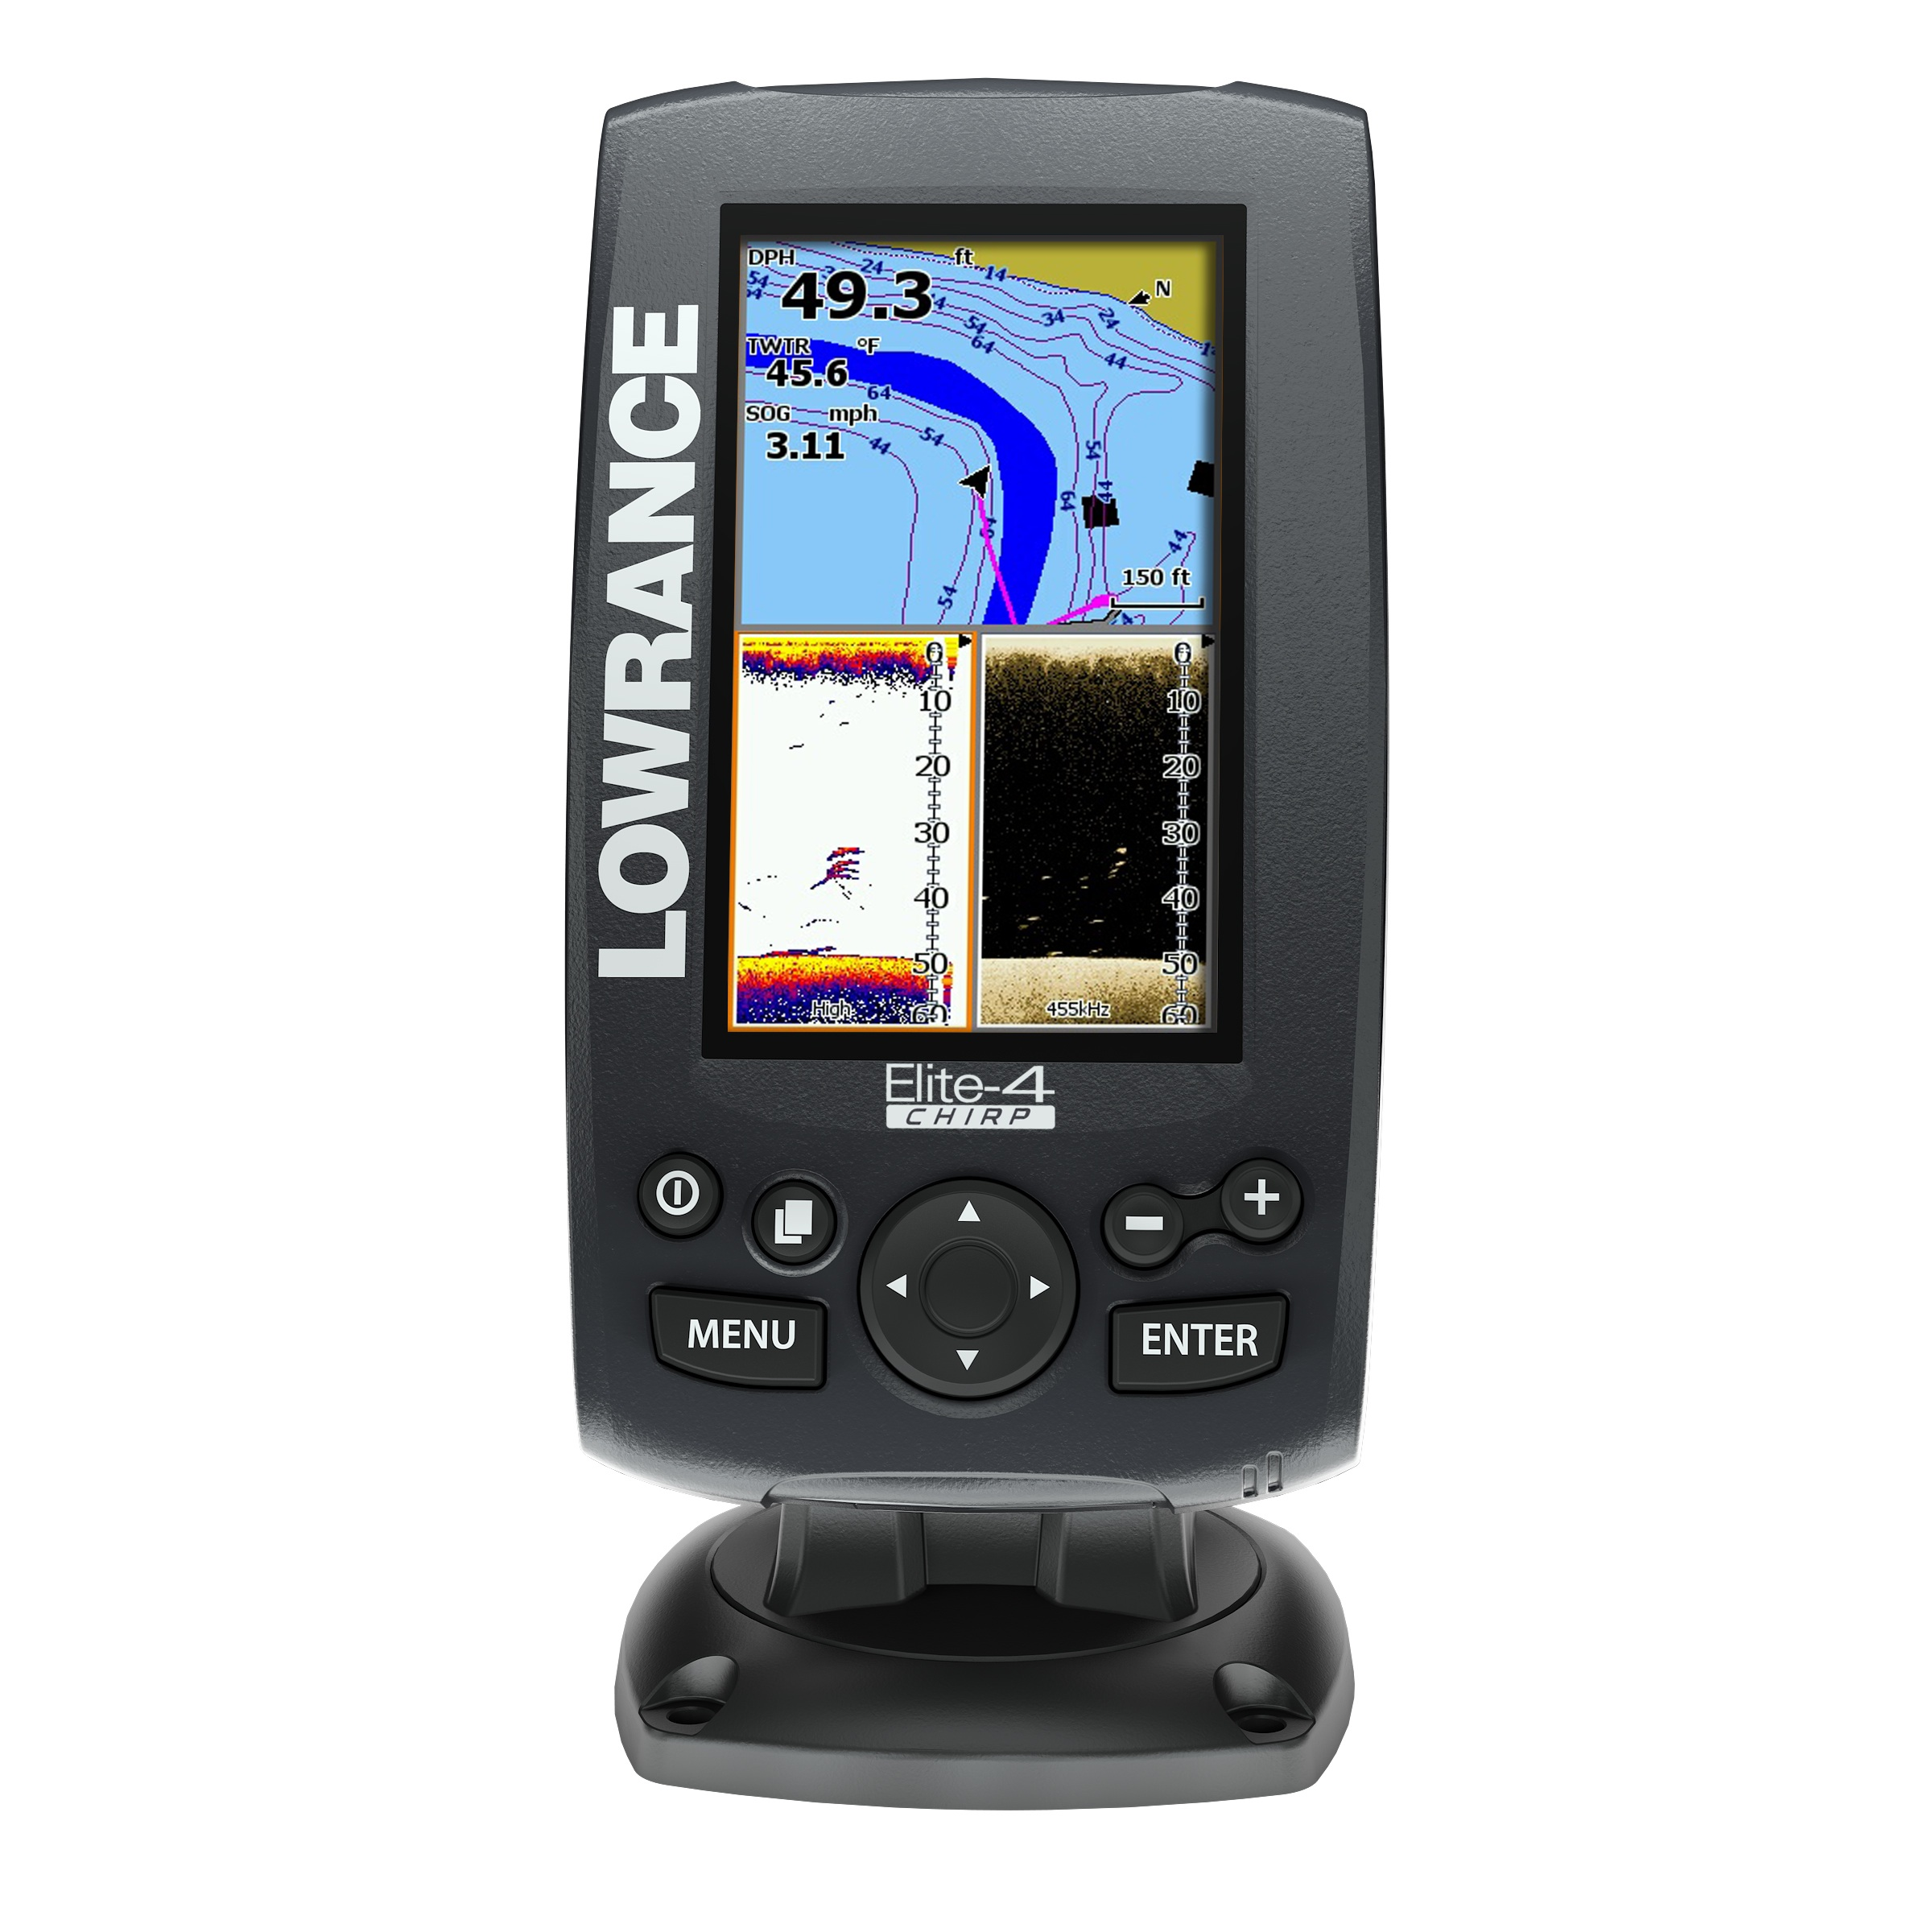 the best fishfinder under $300 for 2015 – best fish finders for, Fish Finder